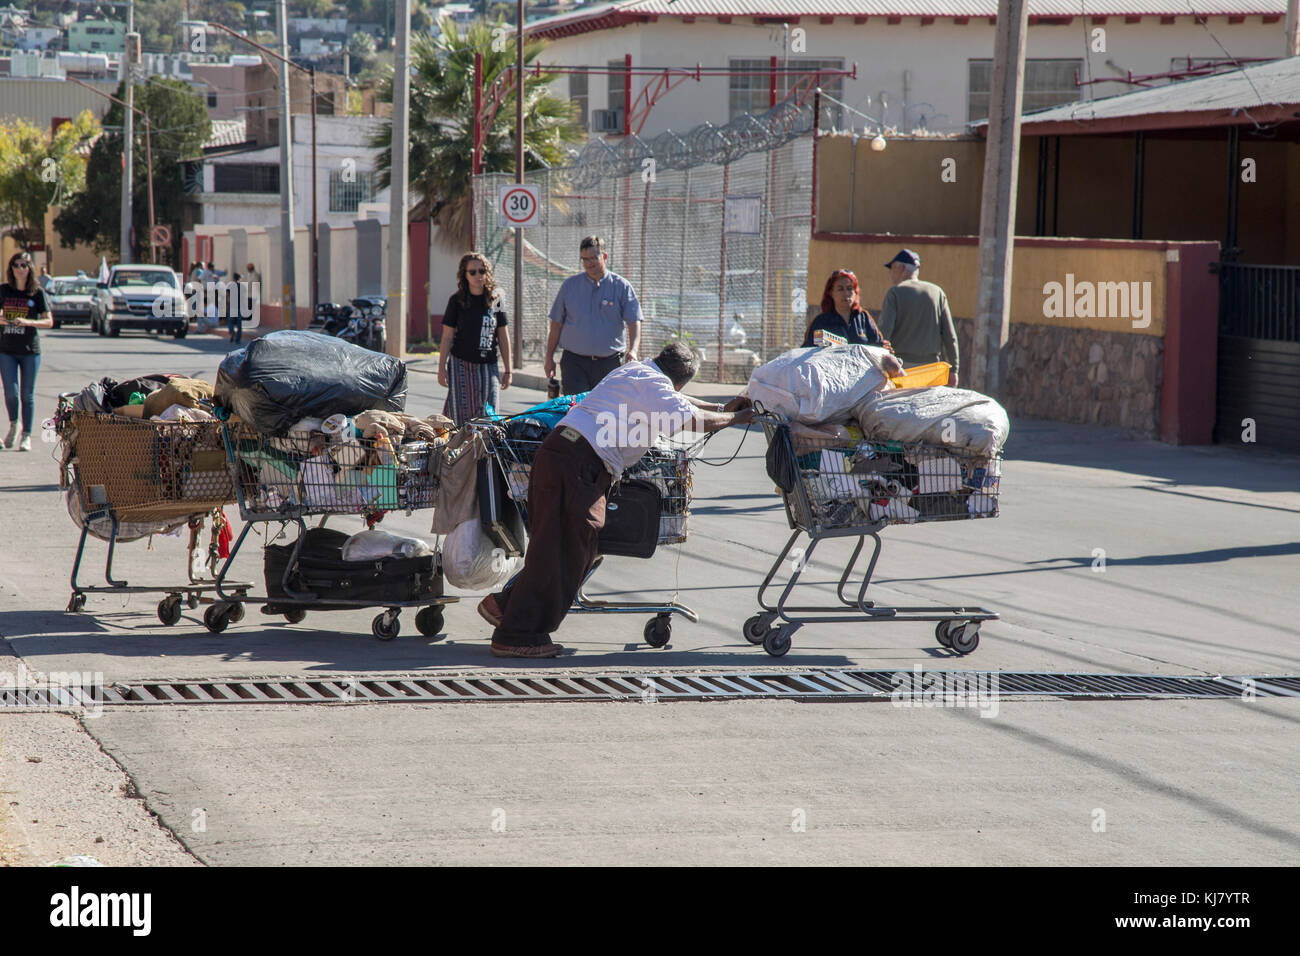 Nogales, Sonora Mexico - A man pushes four supermarket carts of belongings on a Nogales street. - Stock Image